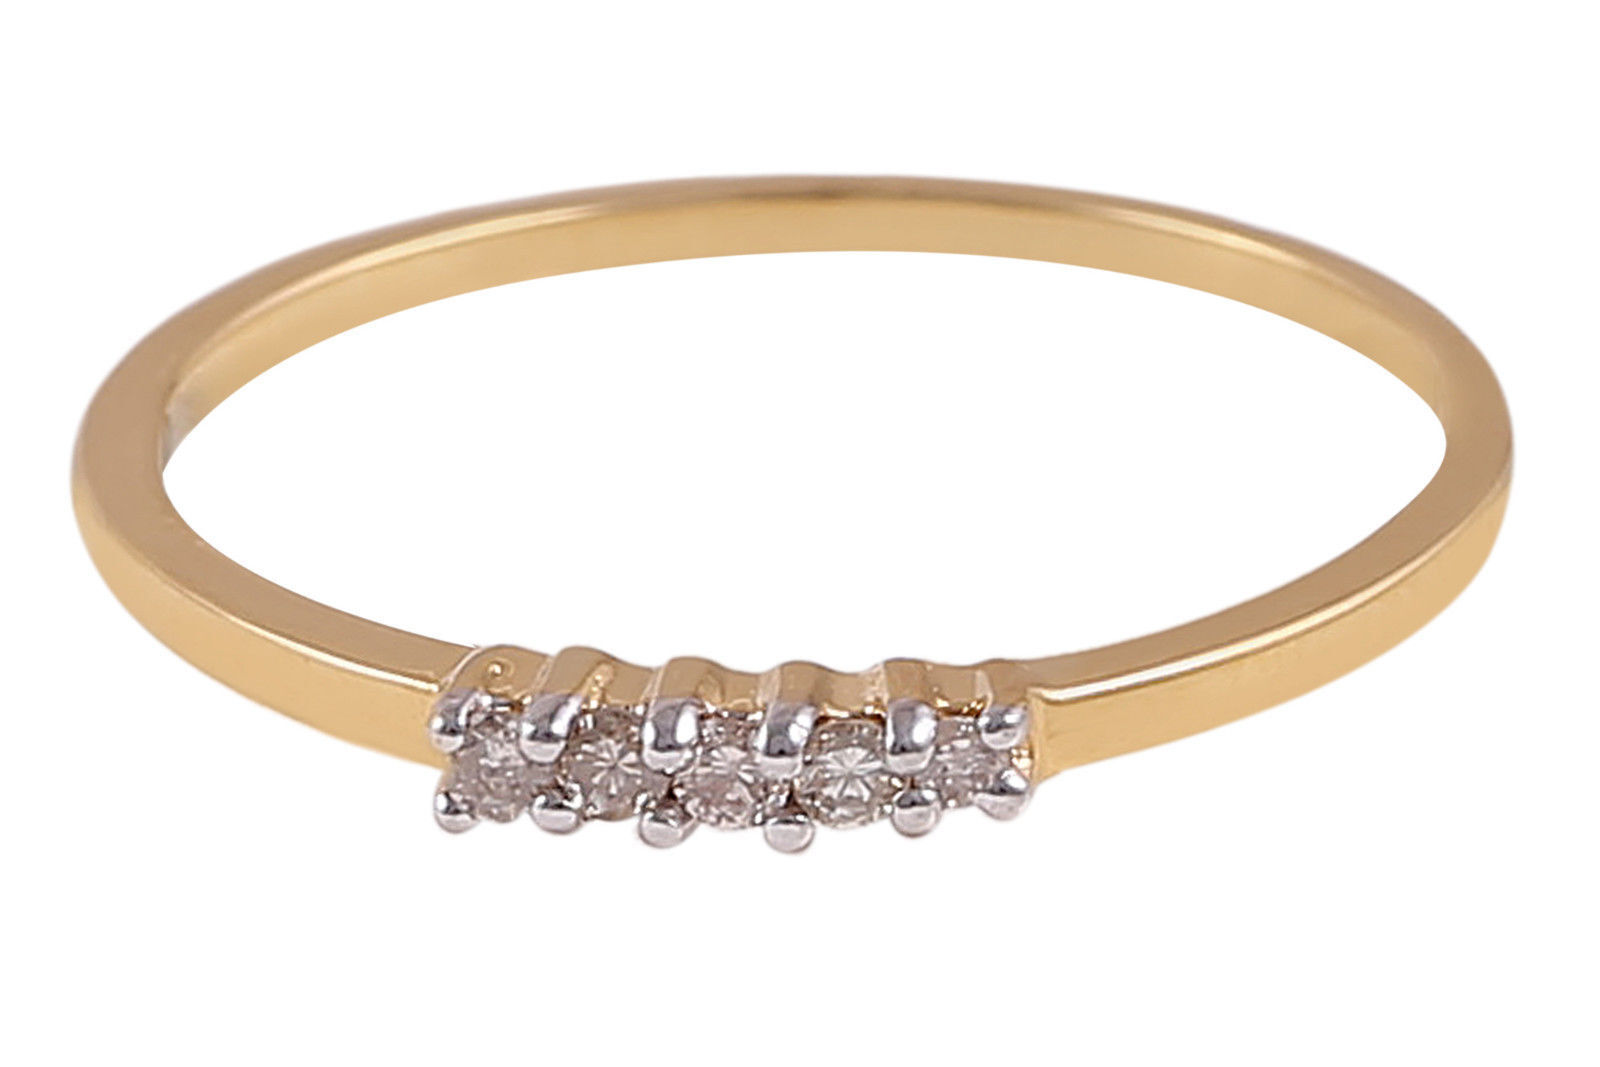 Pave 0.25 Cts Natural Diamonds Five-Stone Ring In Solid Hallmark 18K Yellow gold